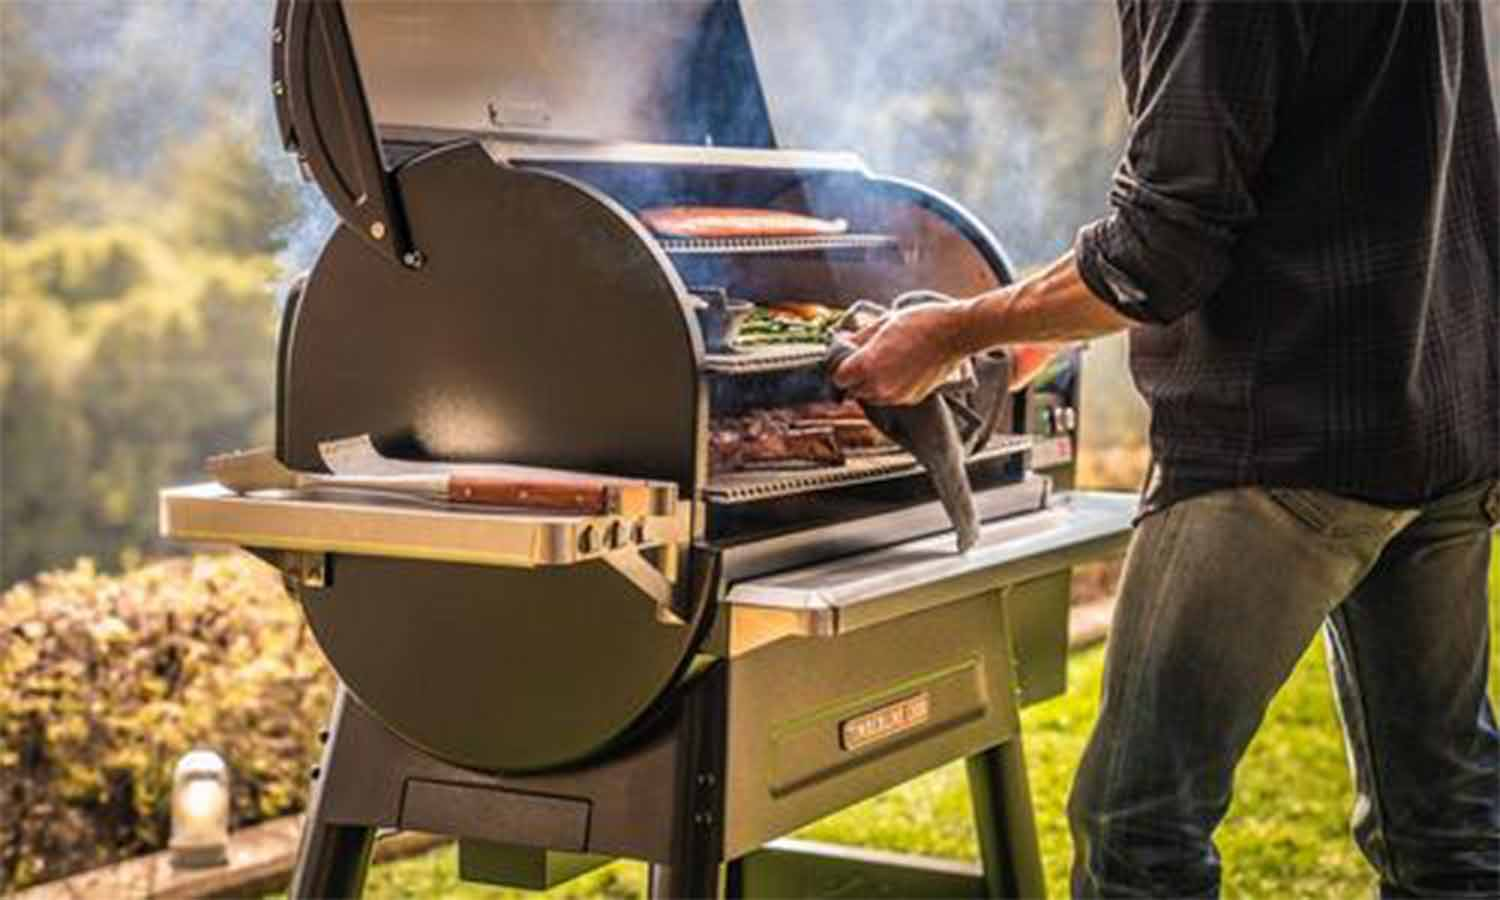 Can I Use Pit Boss Pellets In A Traeger Grill?